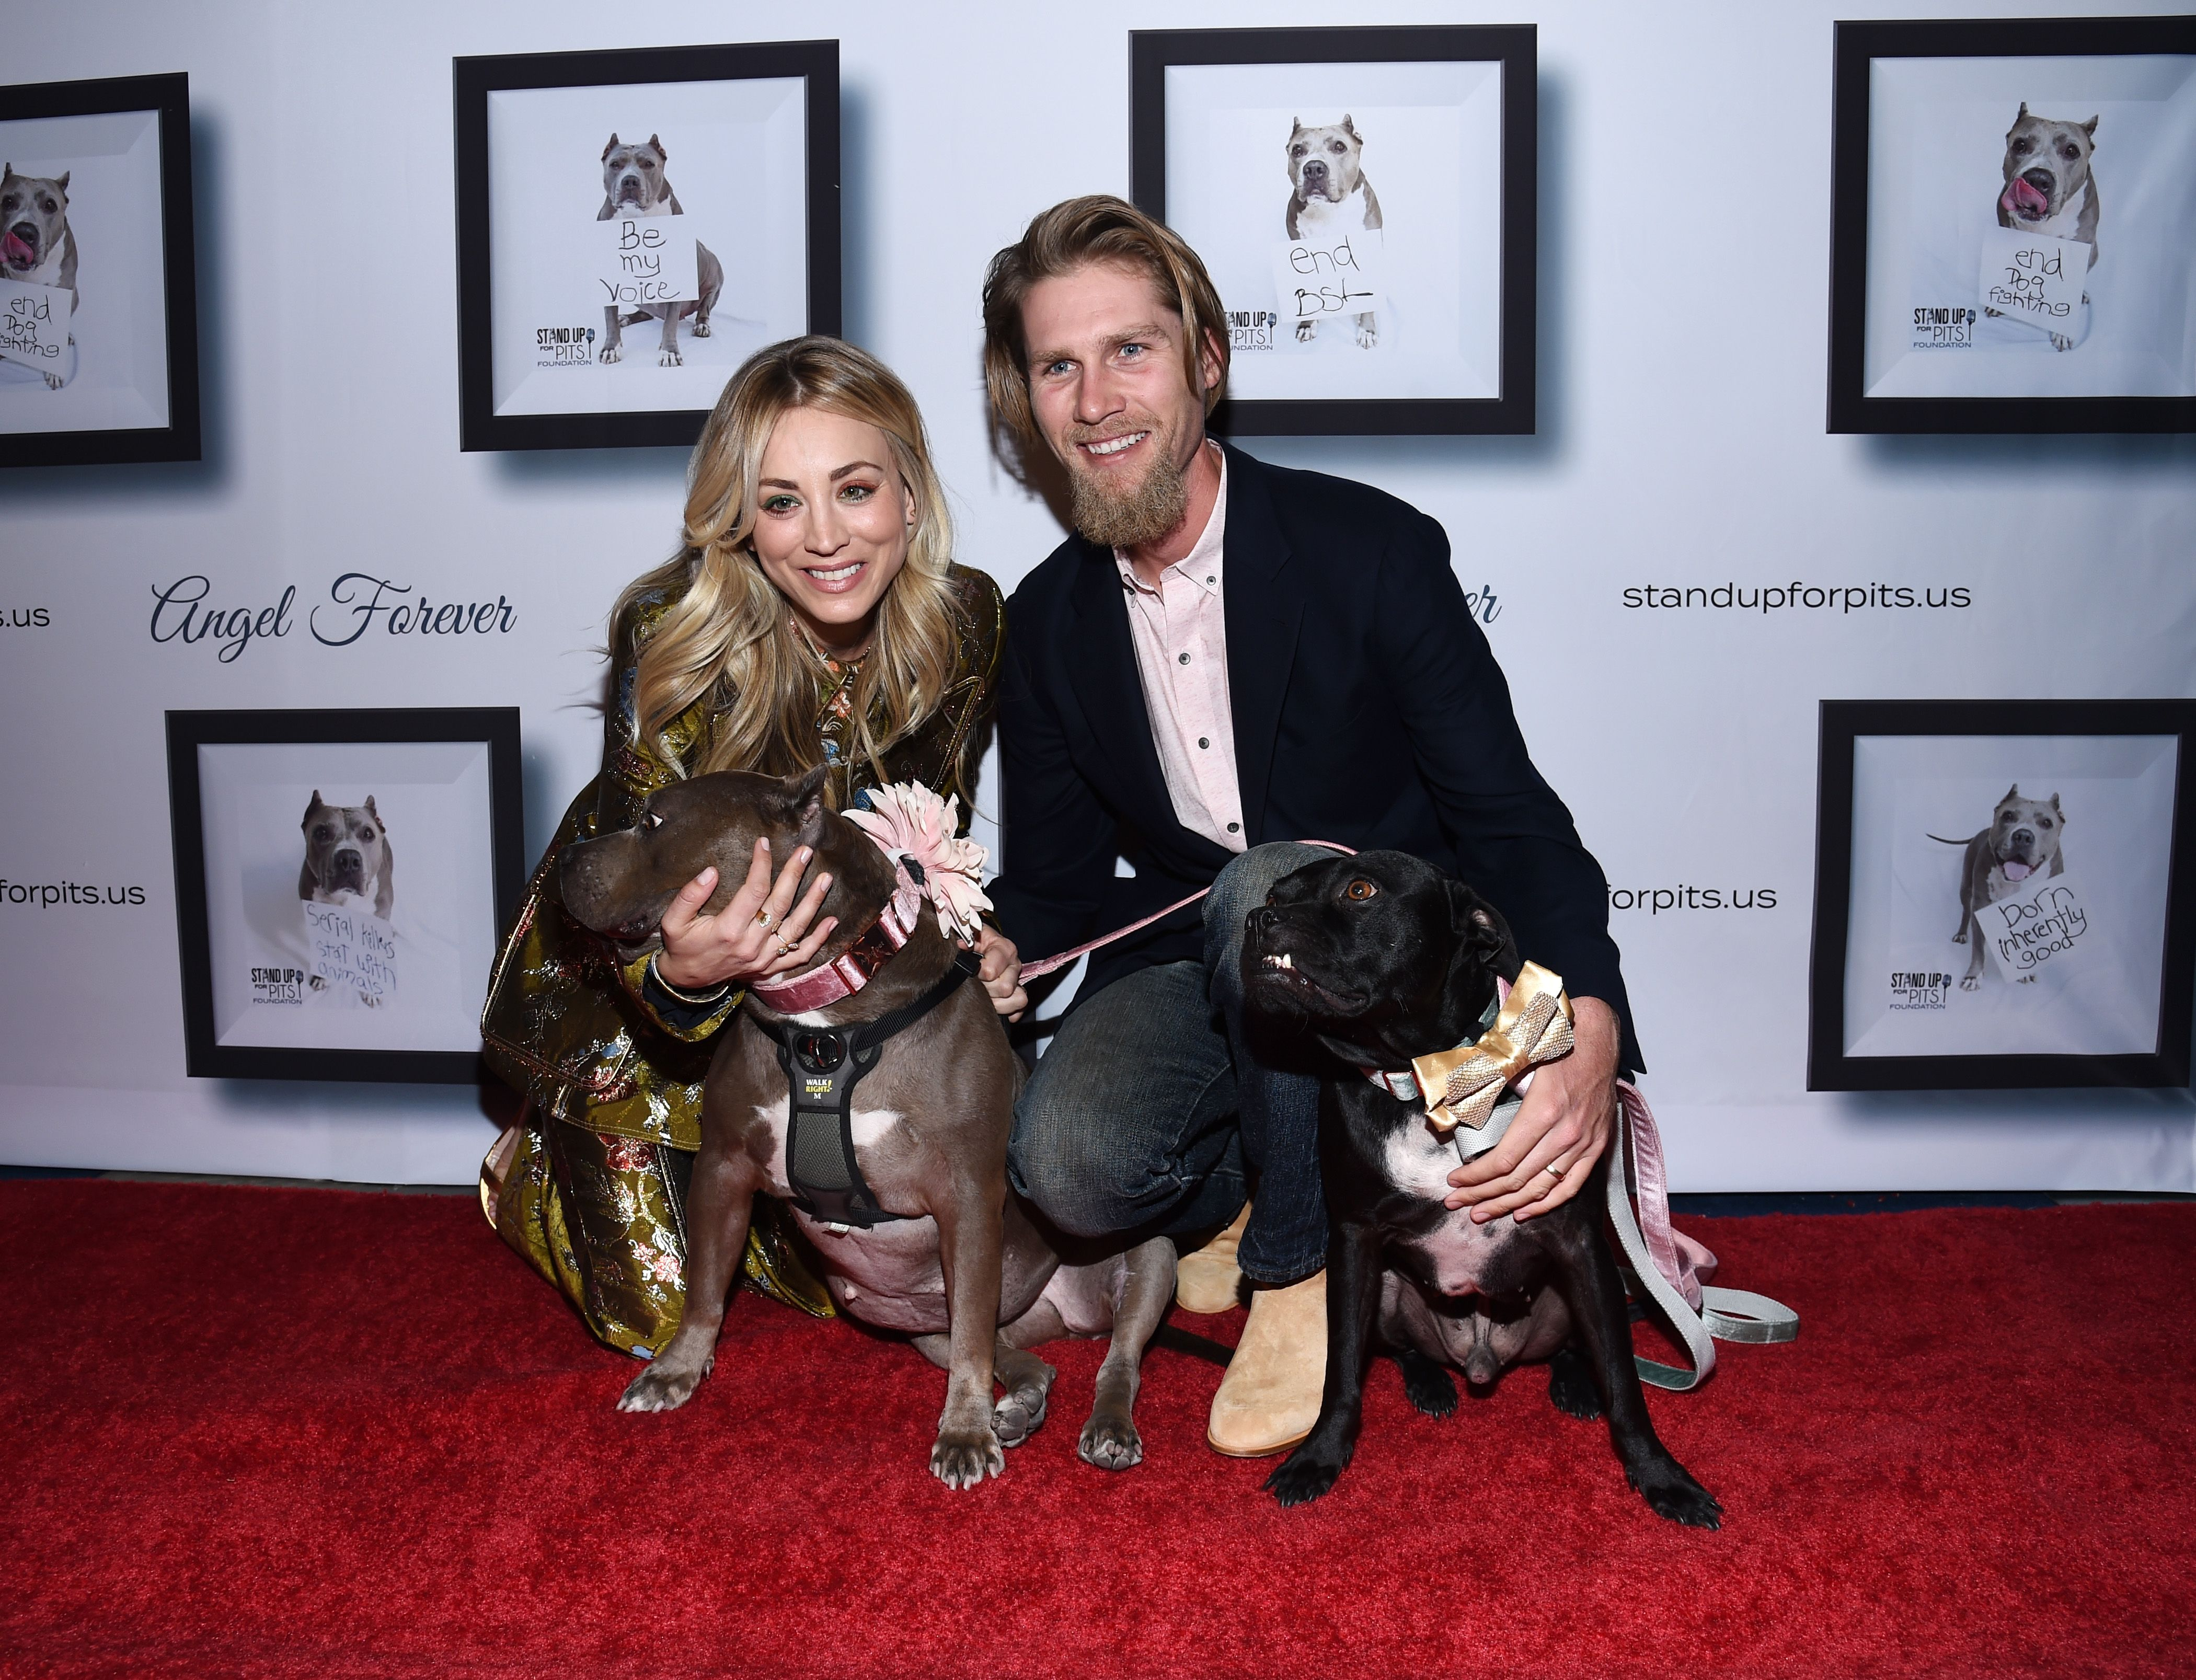 Kaley Cuoco and Karl Cook pose on the red carpet with their dogs